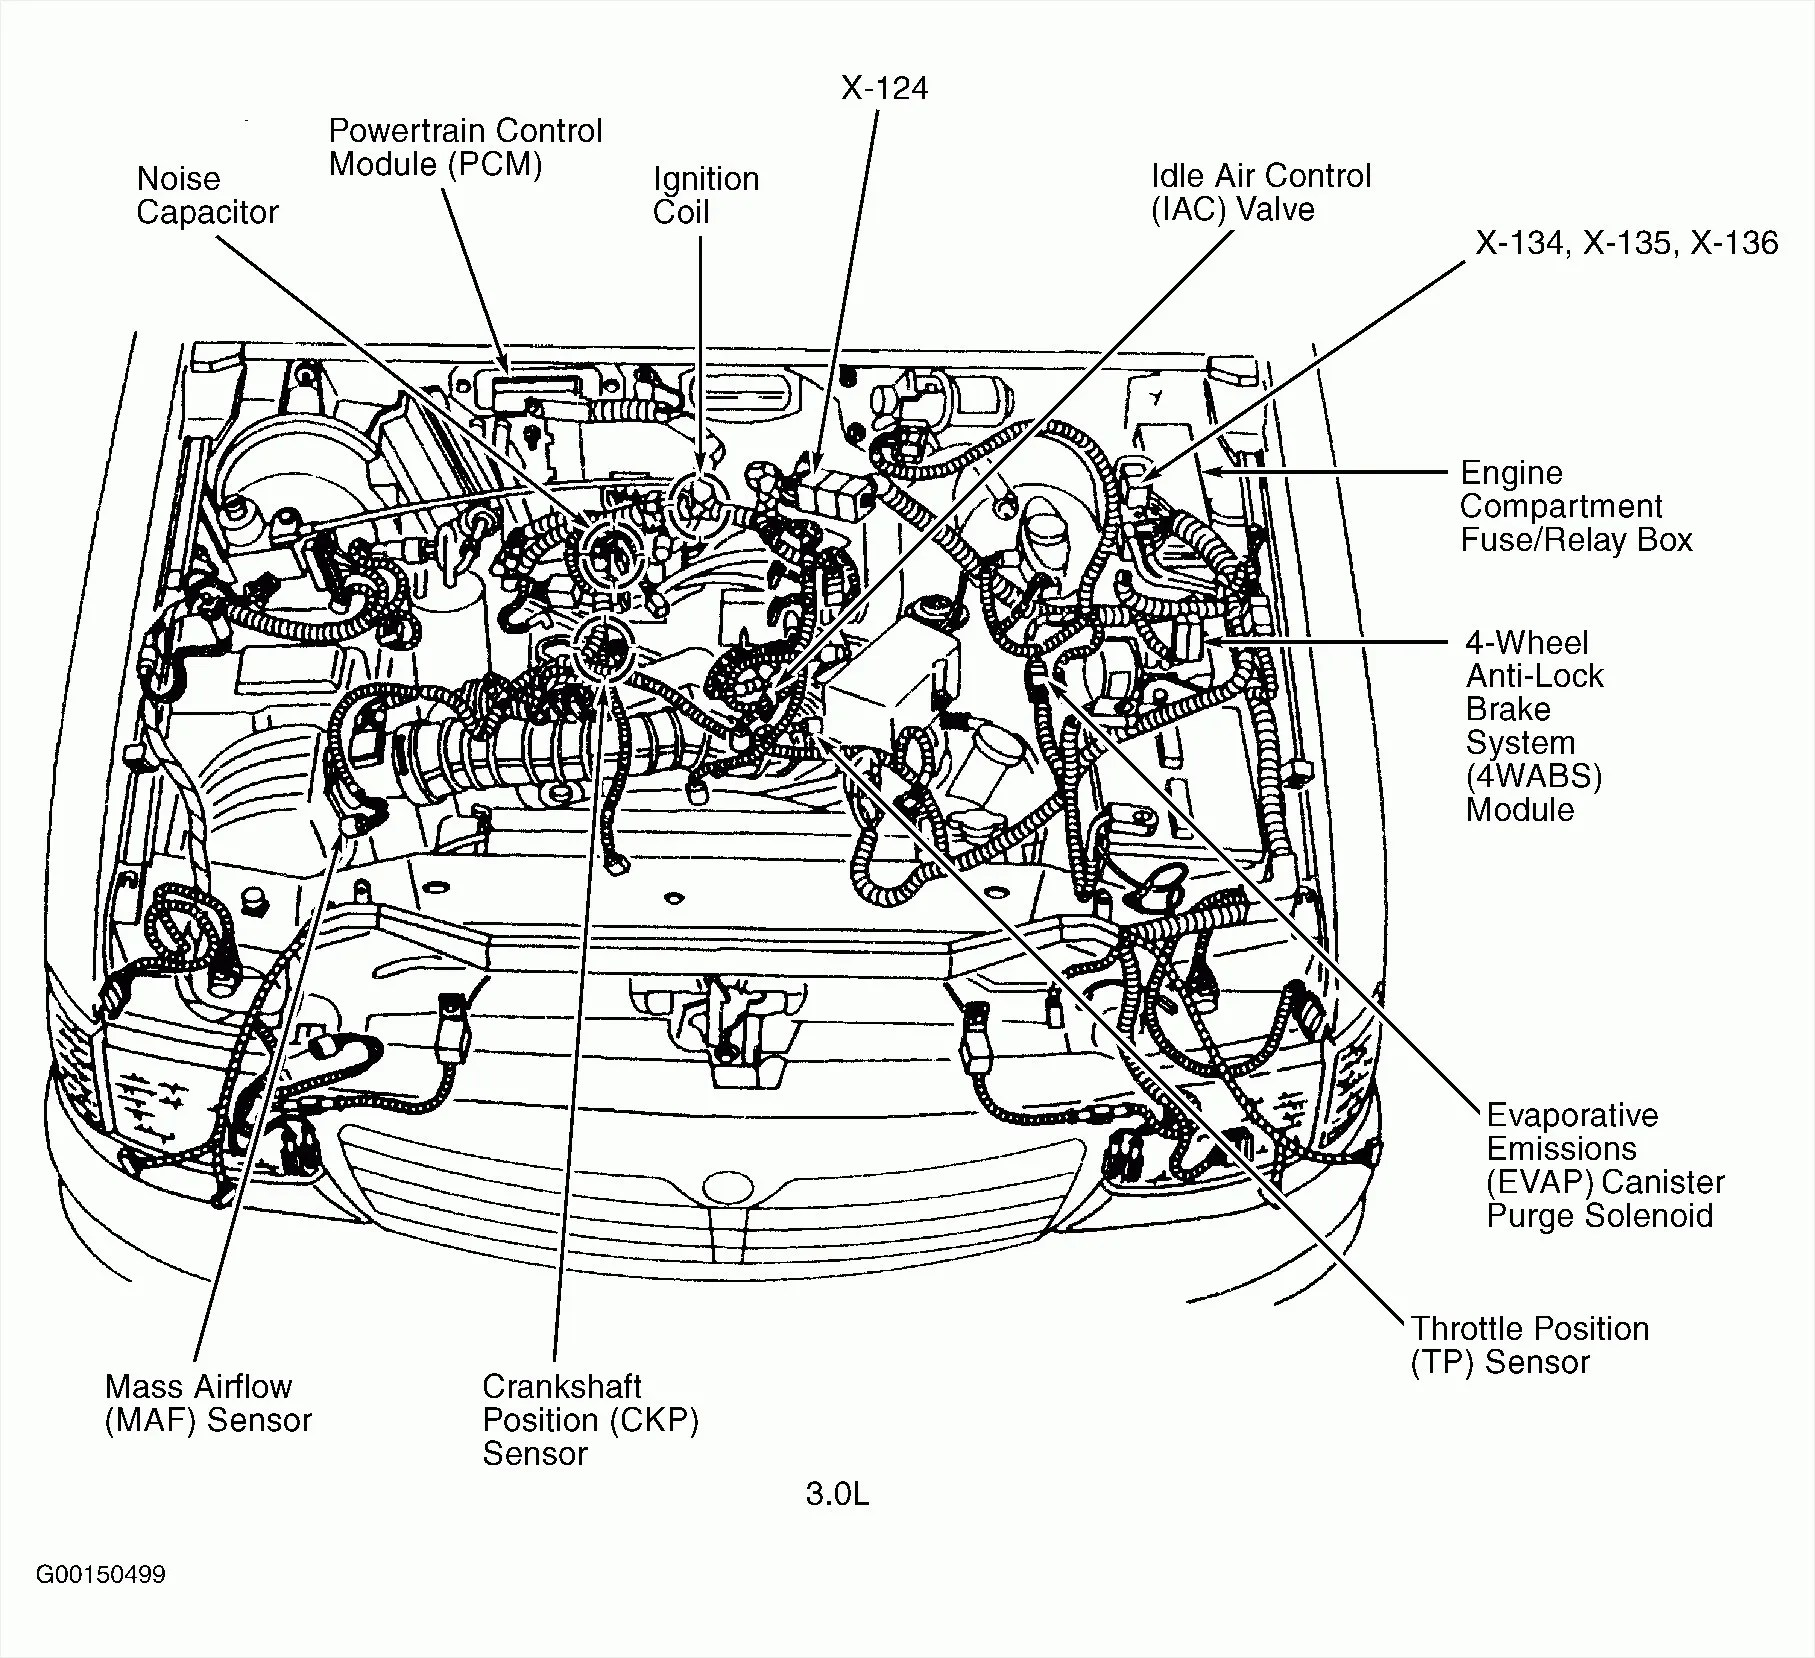 hight resolution of 97 pontiac grand am engine diagram wiring diagram list 97 pontiac 3 4 engine diagram wiring